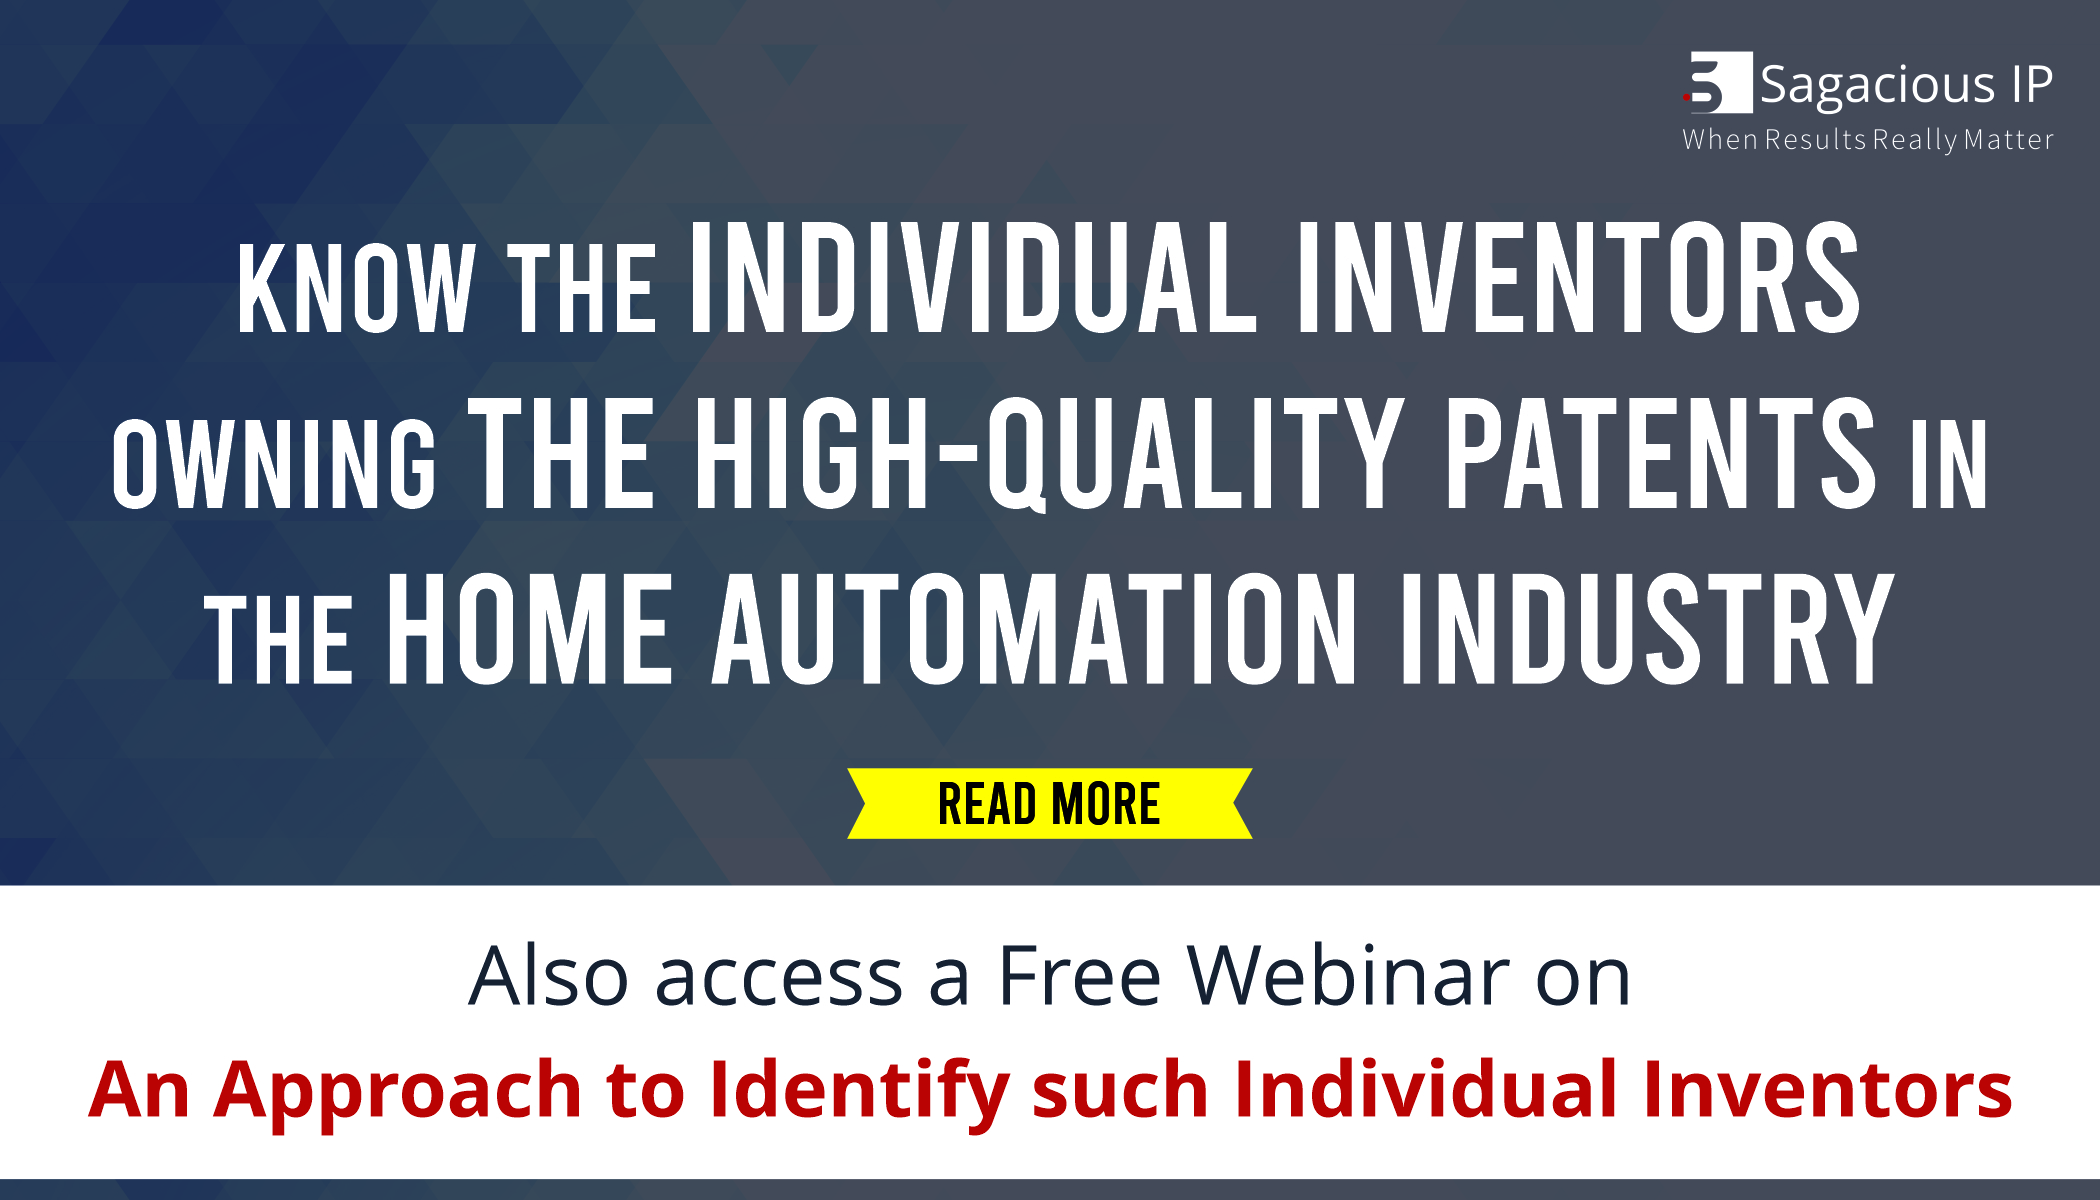 KNOW THE INDIVIDUAL INVENTORS OWNING THE HIGH-QUALITY PATENTS IN THE HOME AUTOMATION INDUSTRY